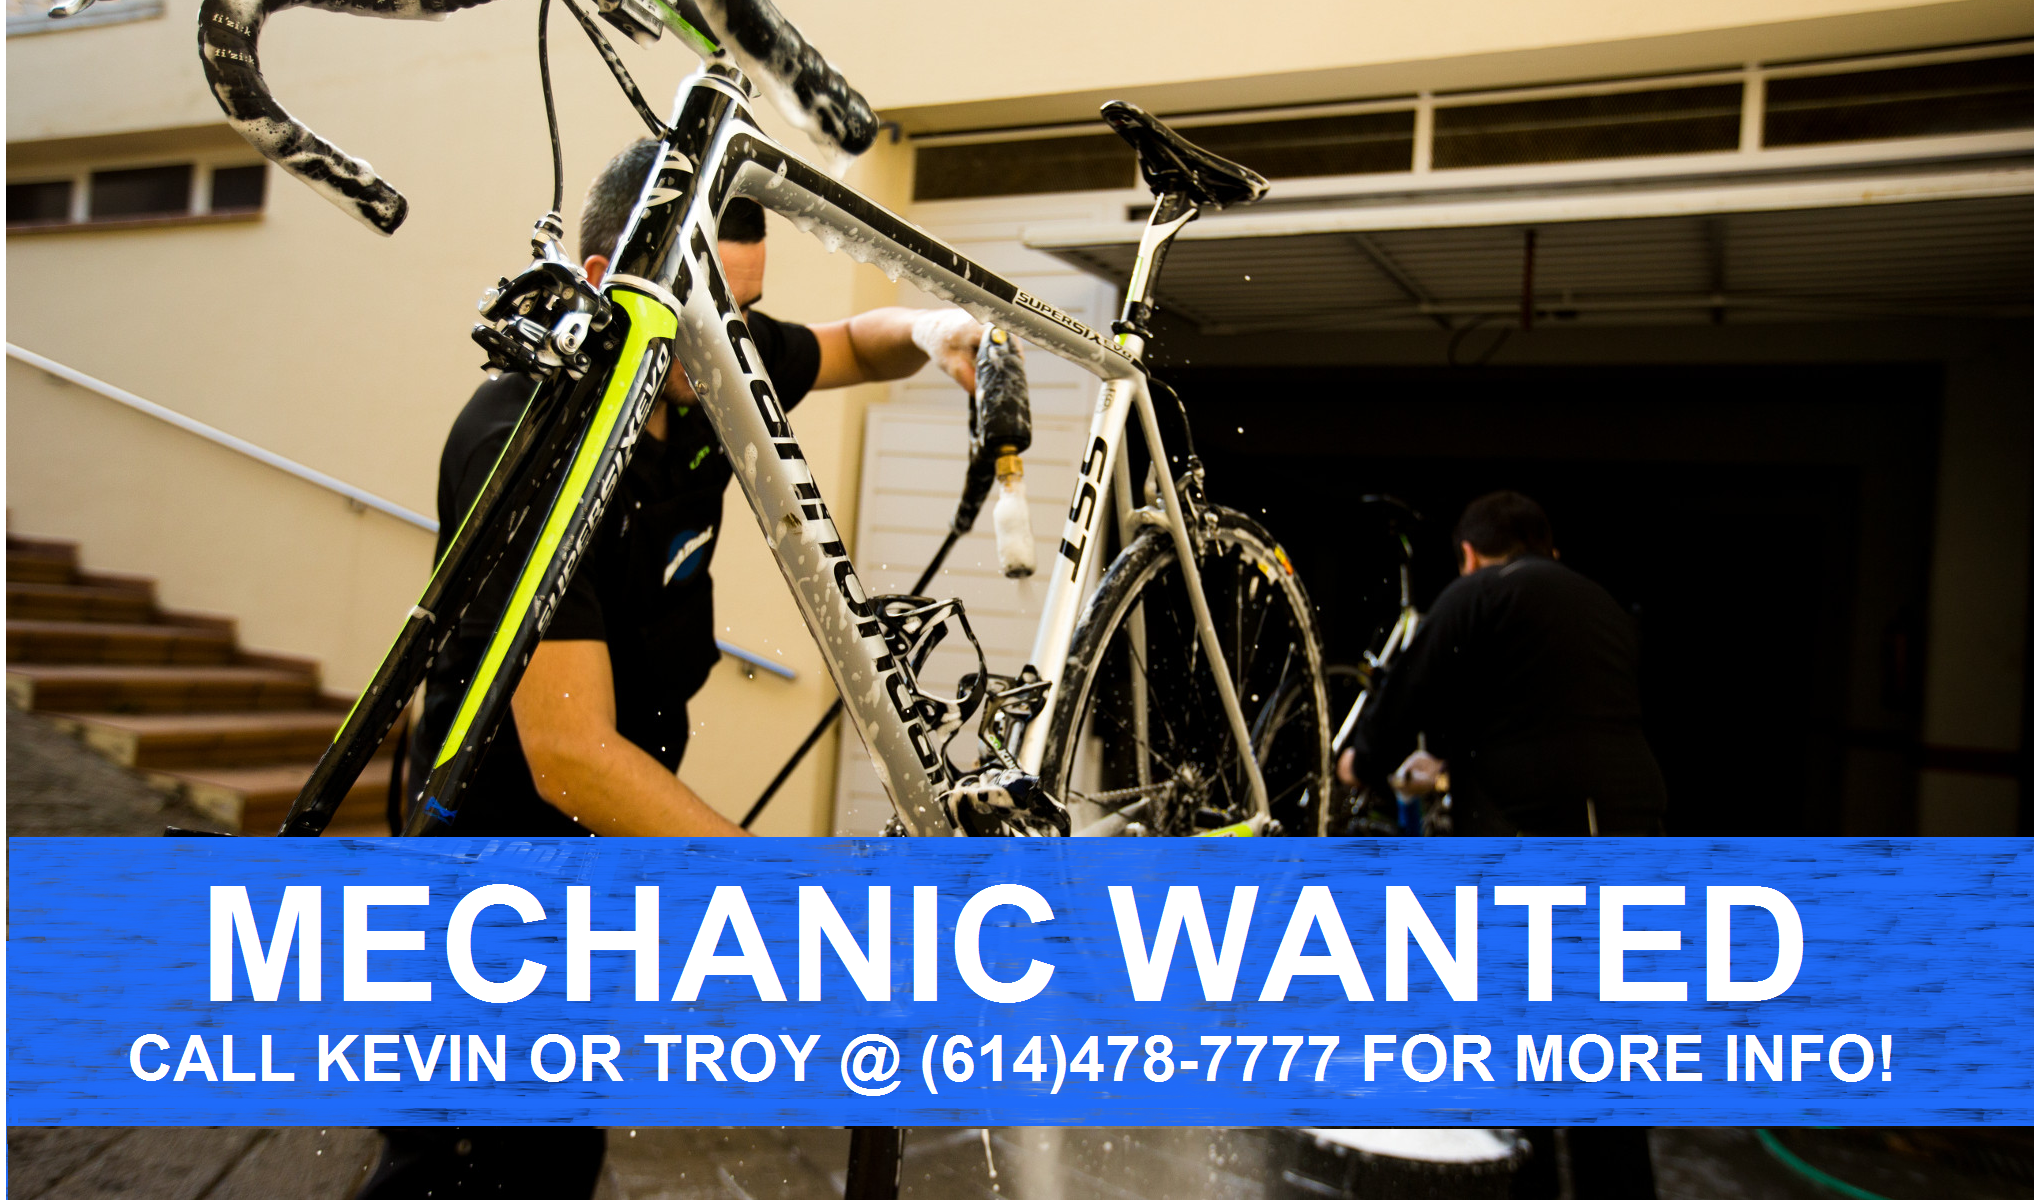 CALL KEVIN OR TROY AT (614)478-7777 FOR MORE INFO!